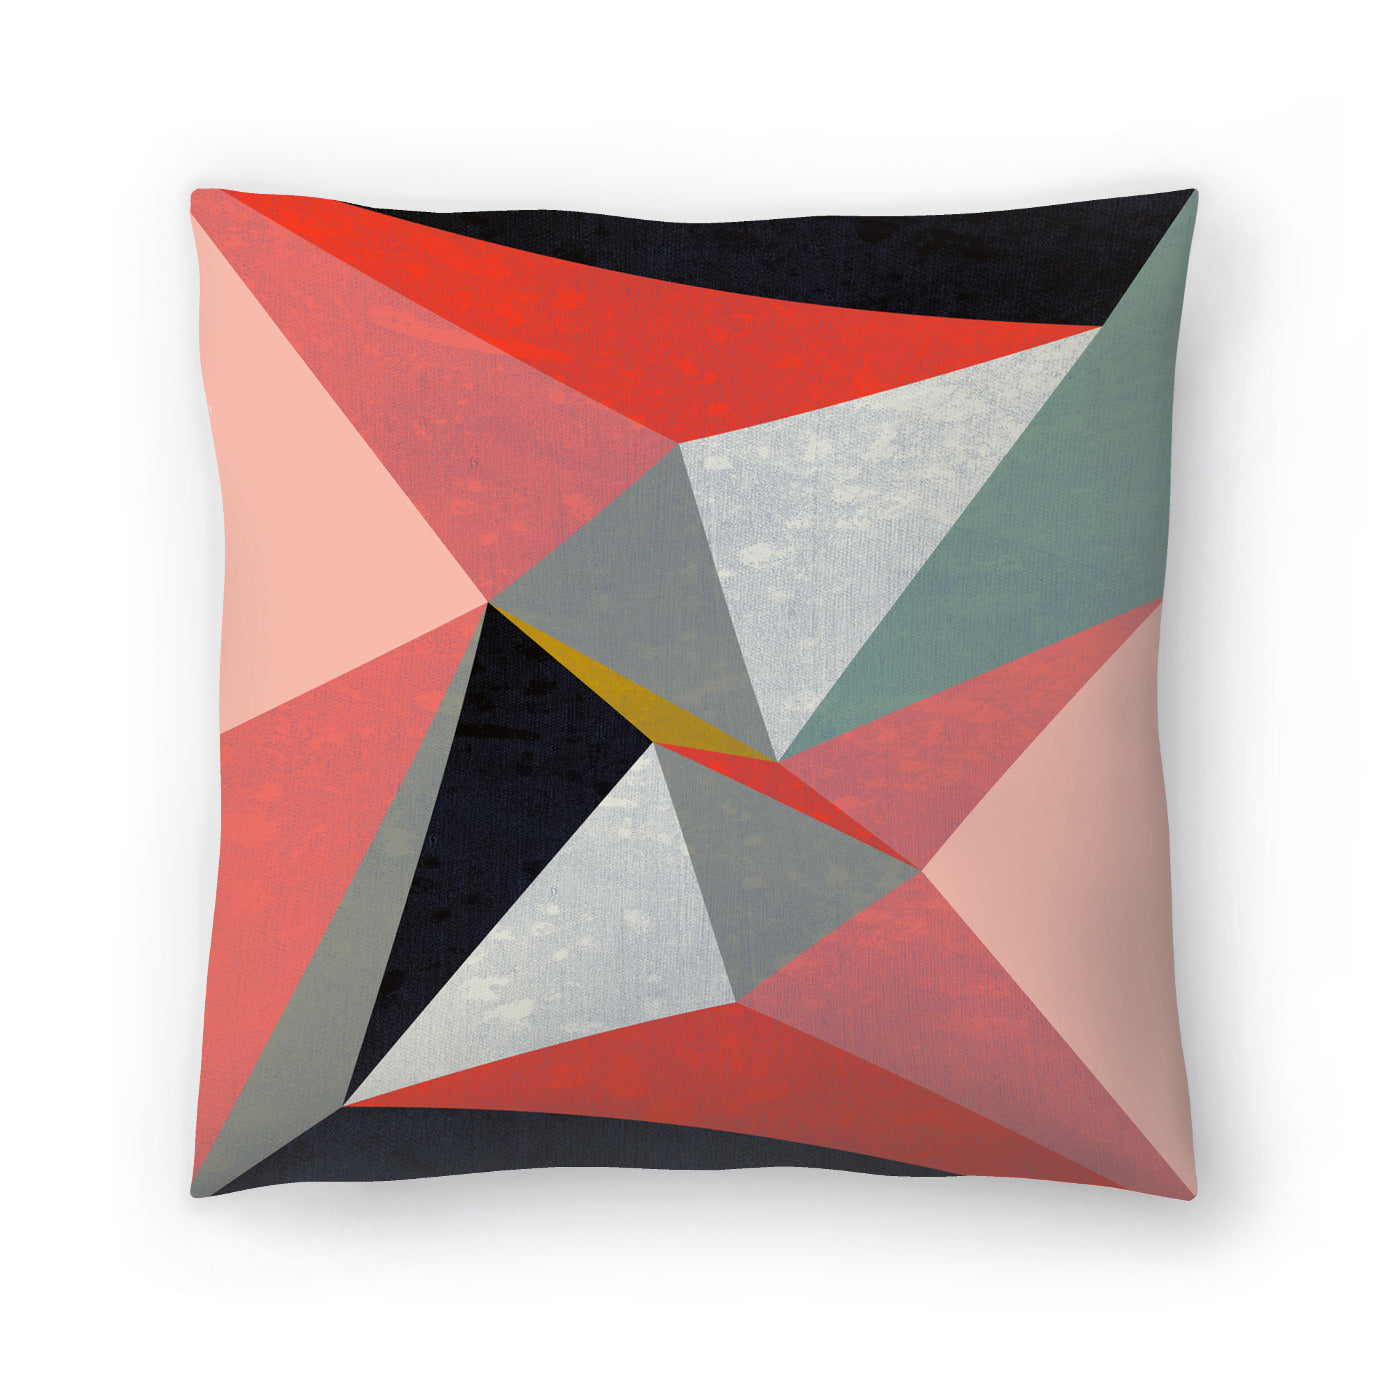 Canvas 3 by Susana Paz Decorative Pillow - Decorative Pillow - Americanflat